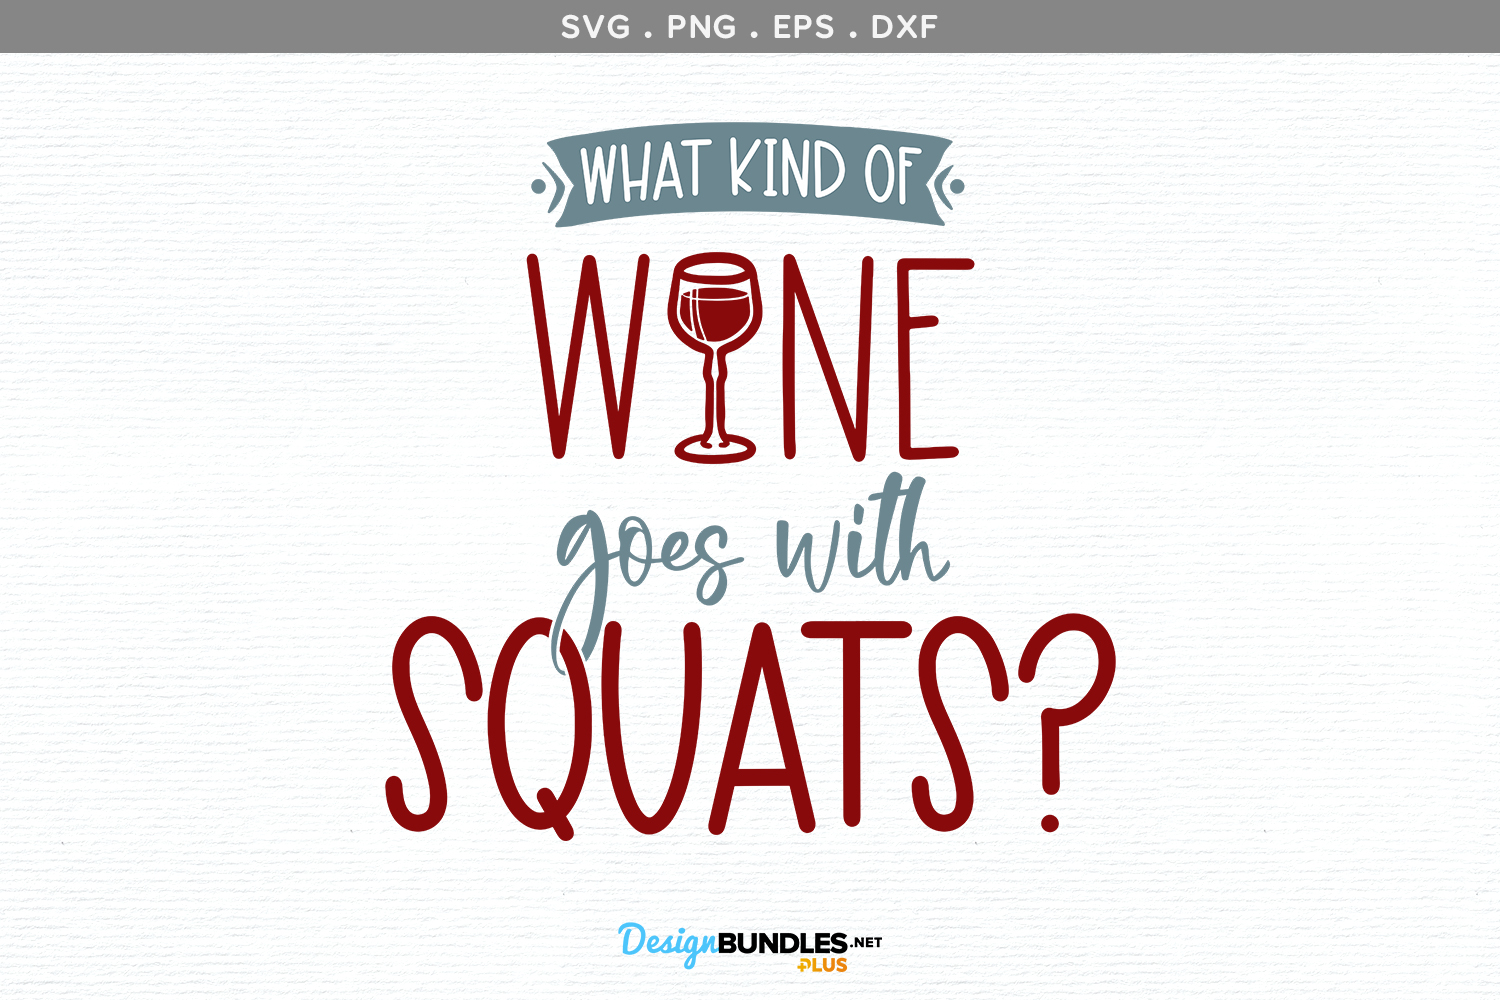 What kind of wine goes with squats? - svg, printable example image 2